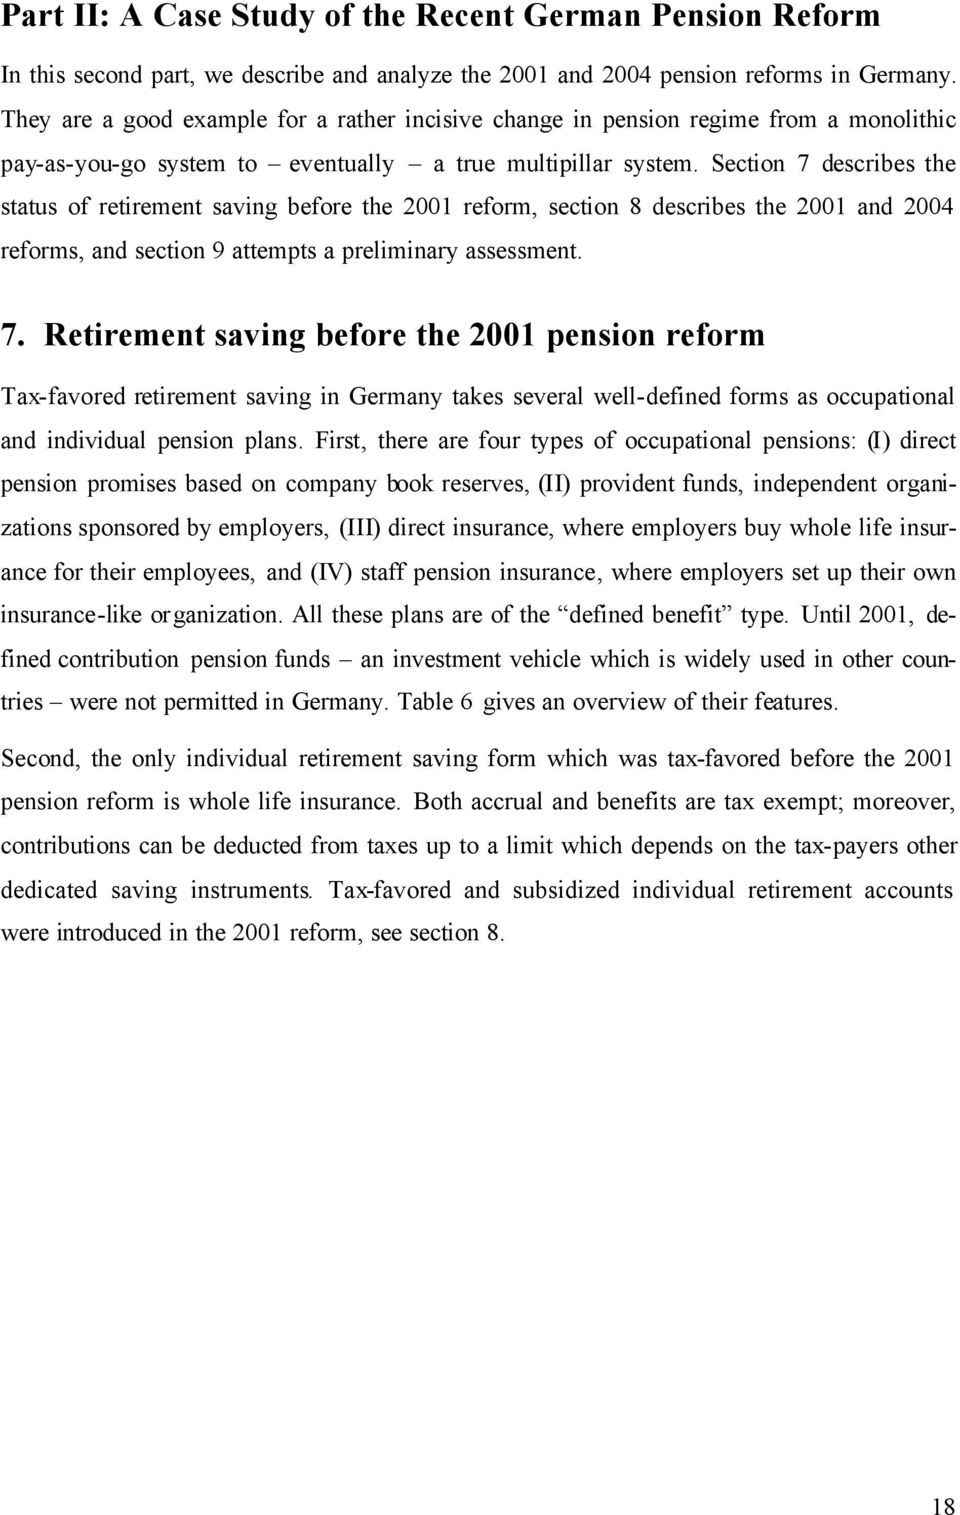 Section 7 describes the status of retirement saving before the 2001 reform, section 8 describes the 2001 and 2004 reforms, and section 9 attempts a preliminary assessment. 7. Retirement saving before the 2001 pension reform Tax-favored retirement saving in Germany takes several well-defined forms as occupational and individual pension plans.